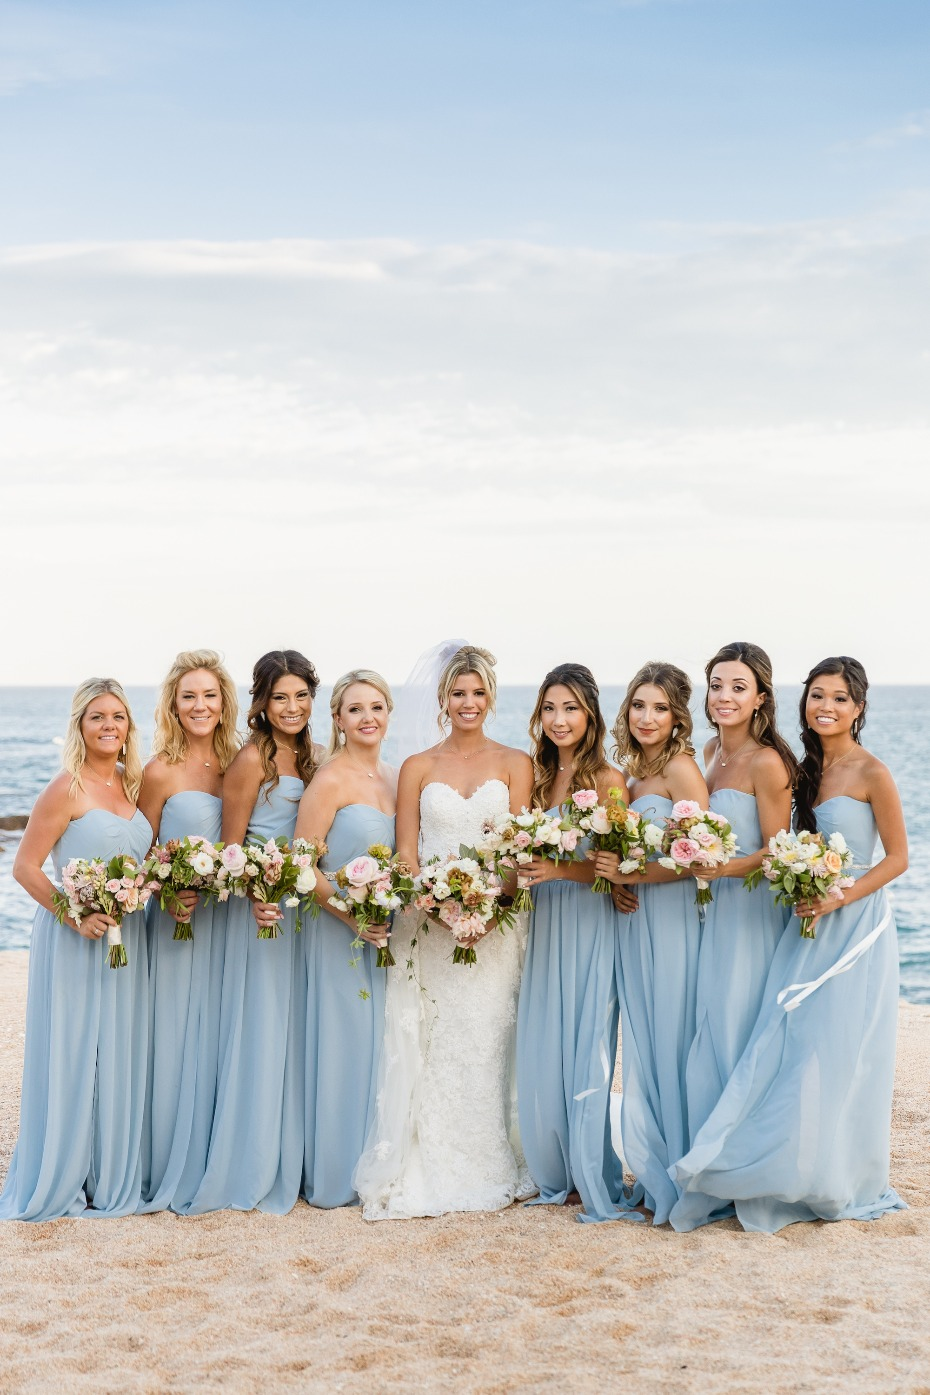 Blue bridesmaid dresses in Mexico